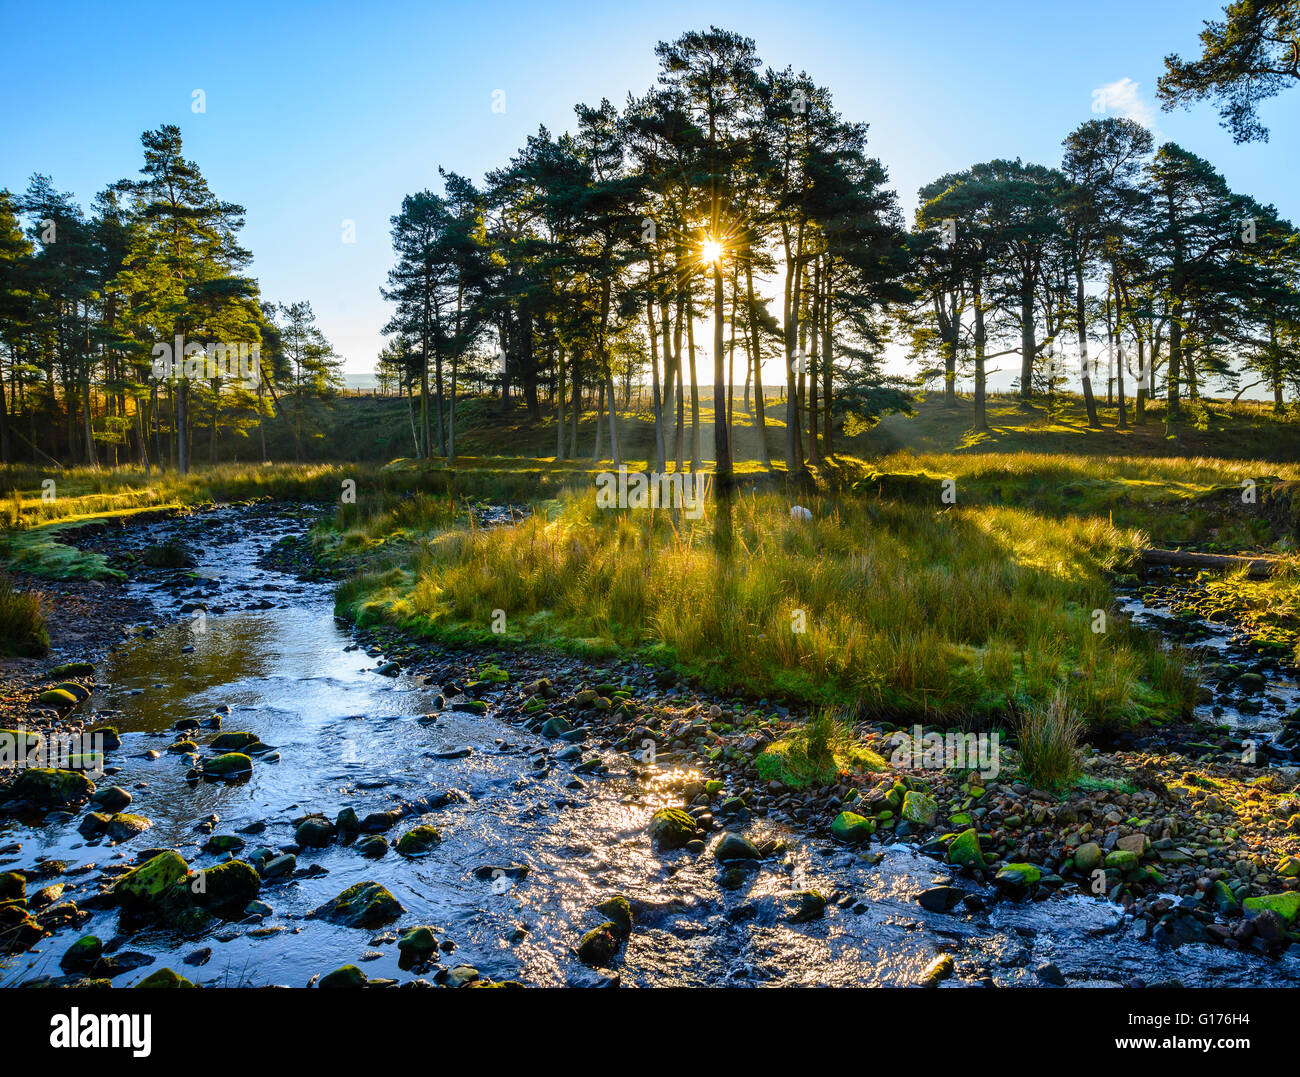 Early morning light through trees on the Marshaw Wyre river near the Trough of Bowland in the Forest of Bowland - Stock Image